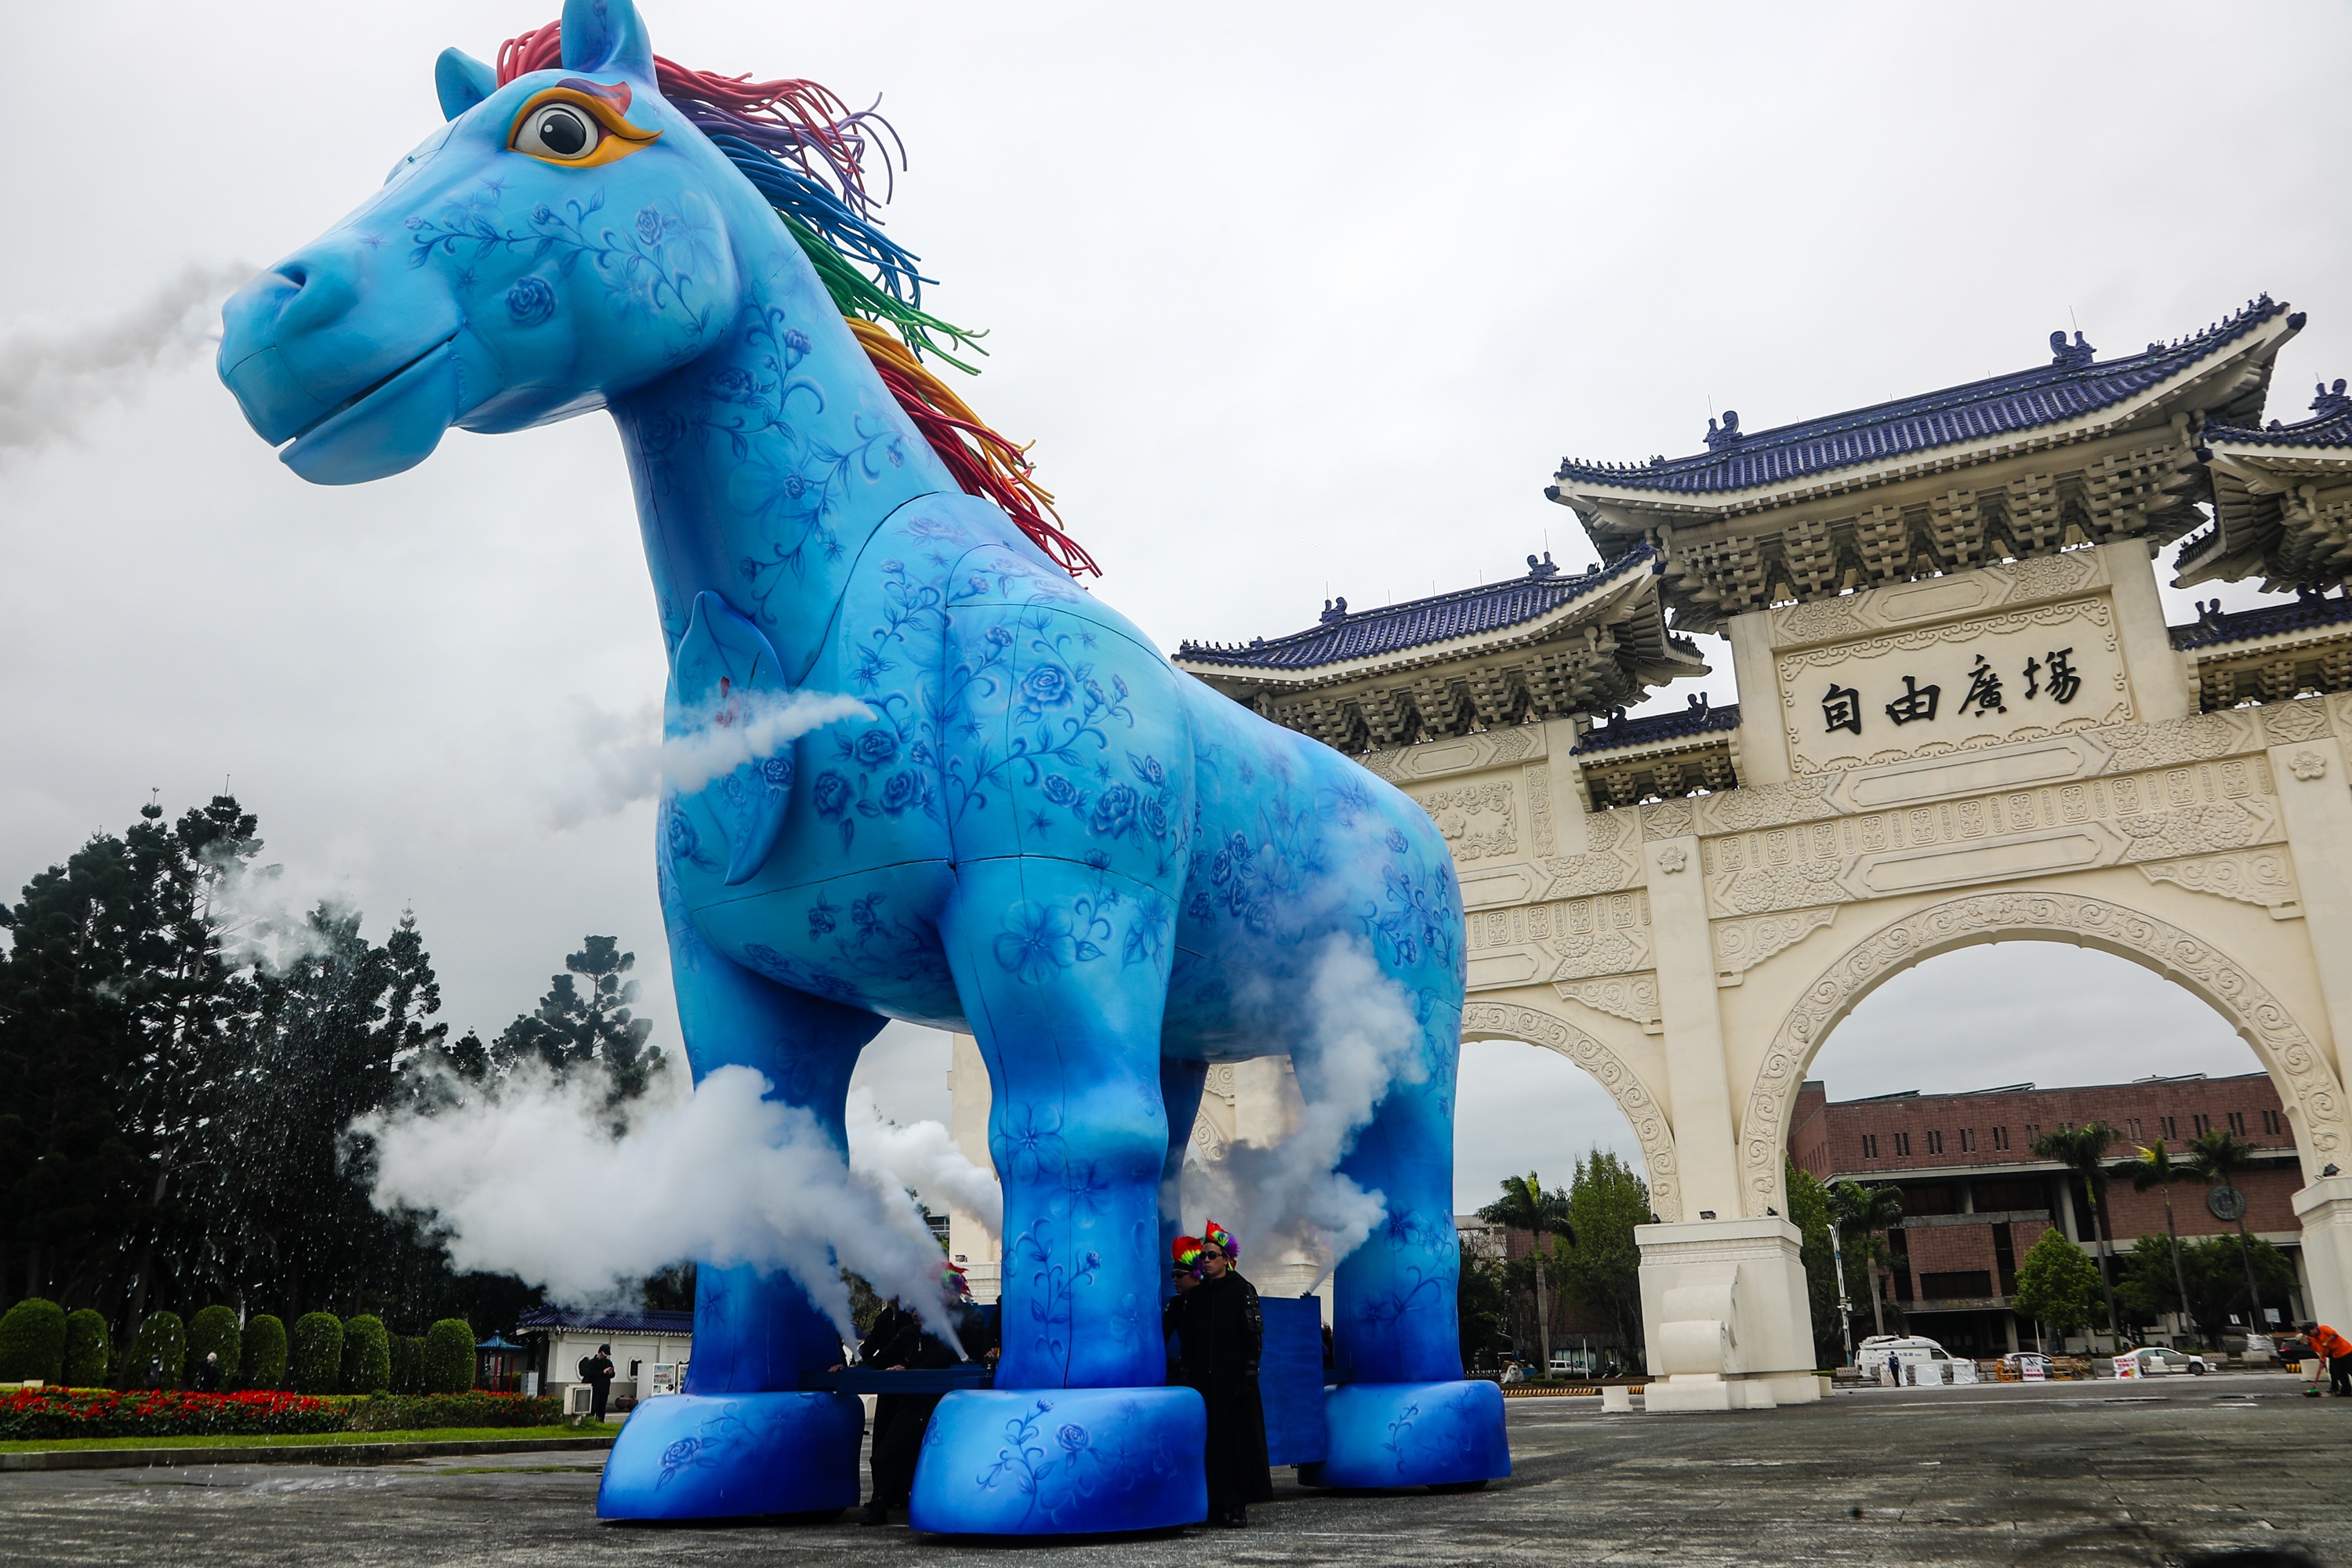 Paper Windmill Theatre exhibits giant blue horse statue in front of Sun Yat-sen Memorial Hall